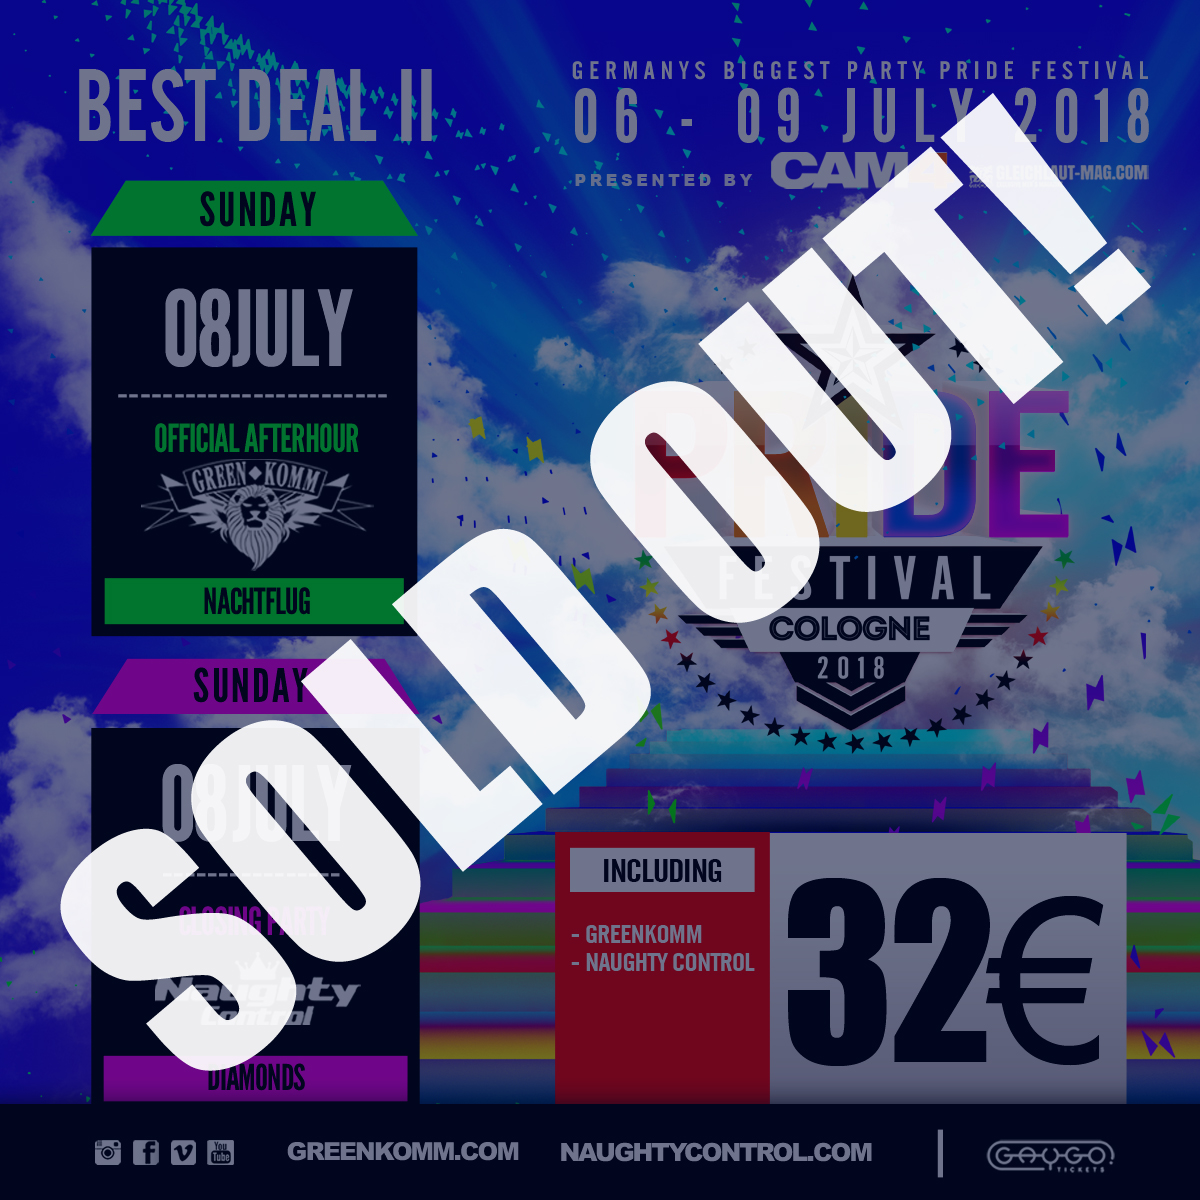 , +++ BEST DEAL II SOLD OUT! +++